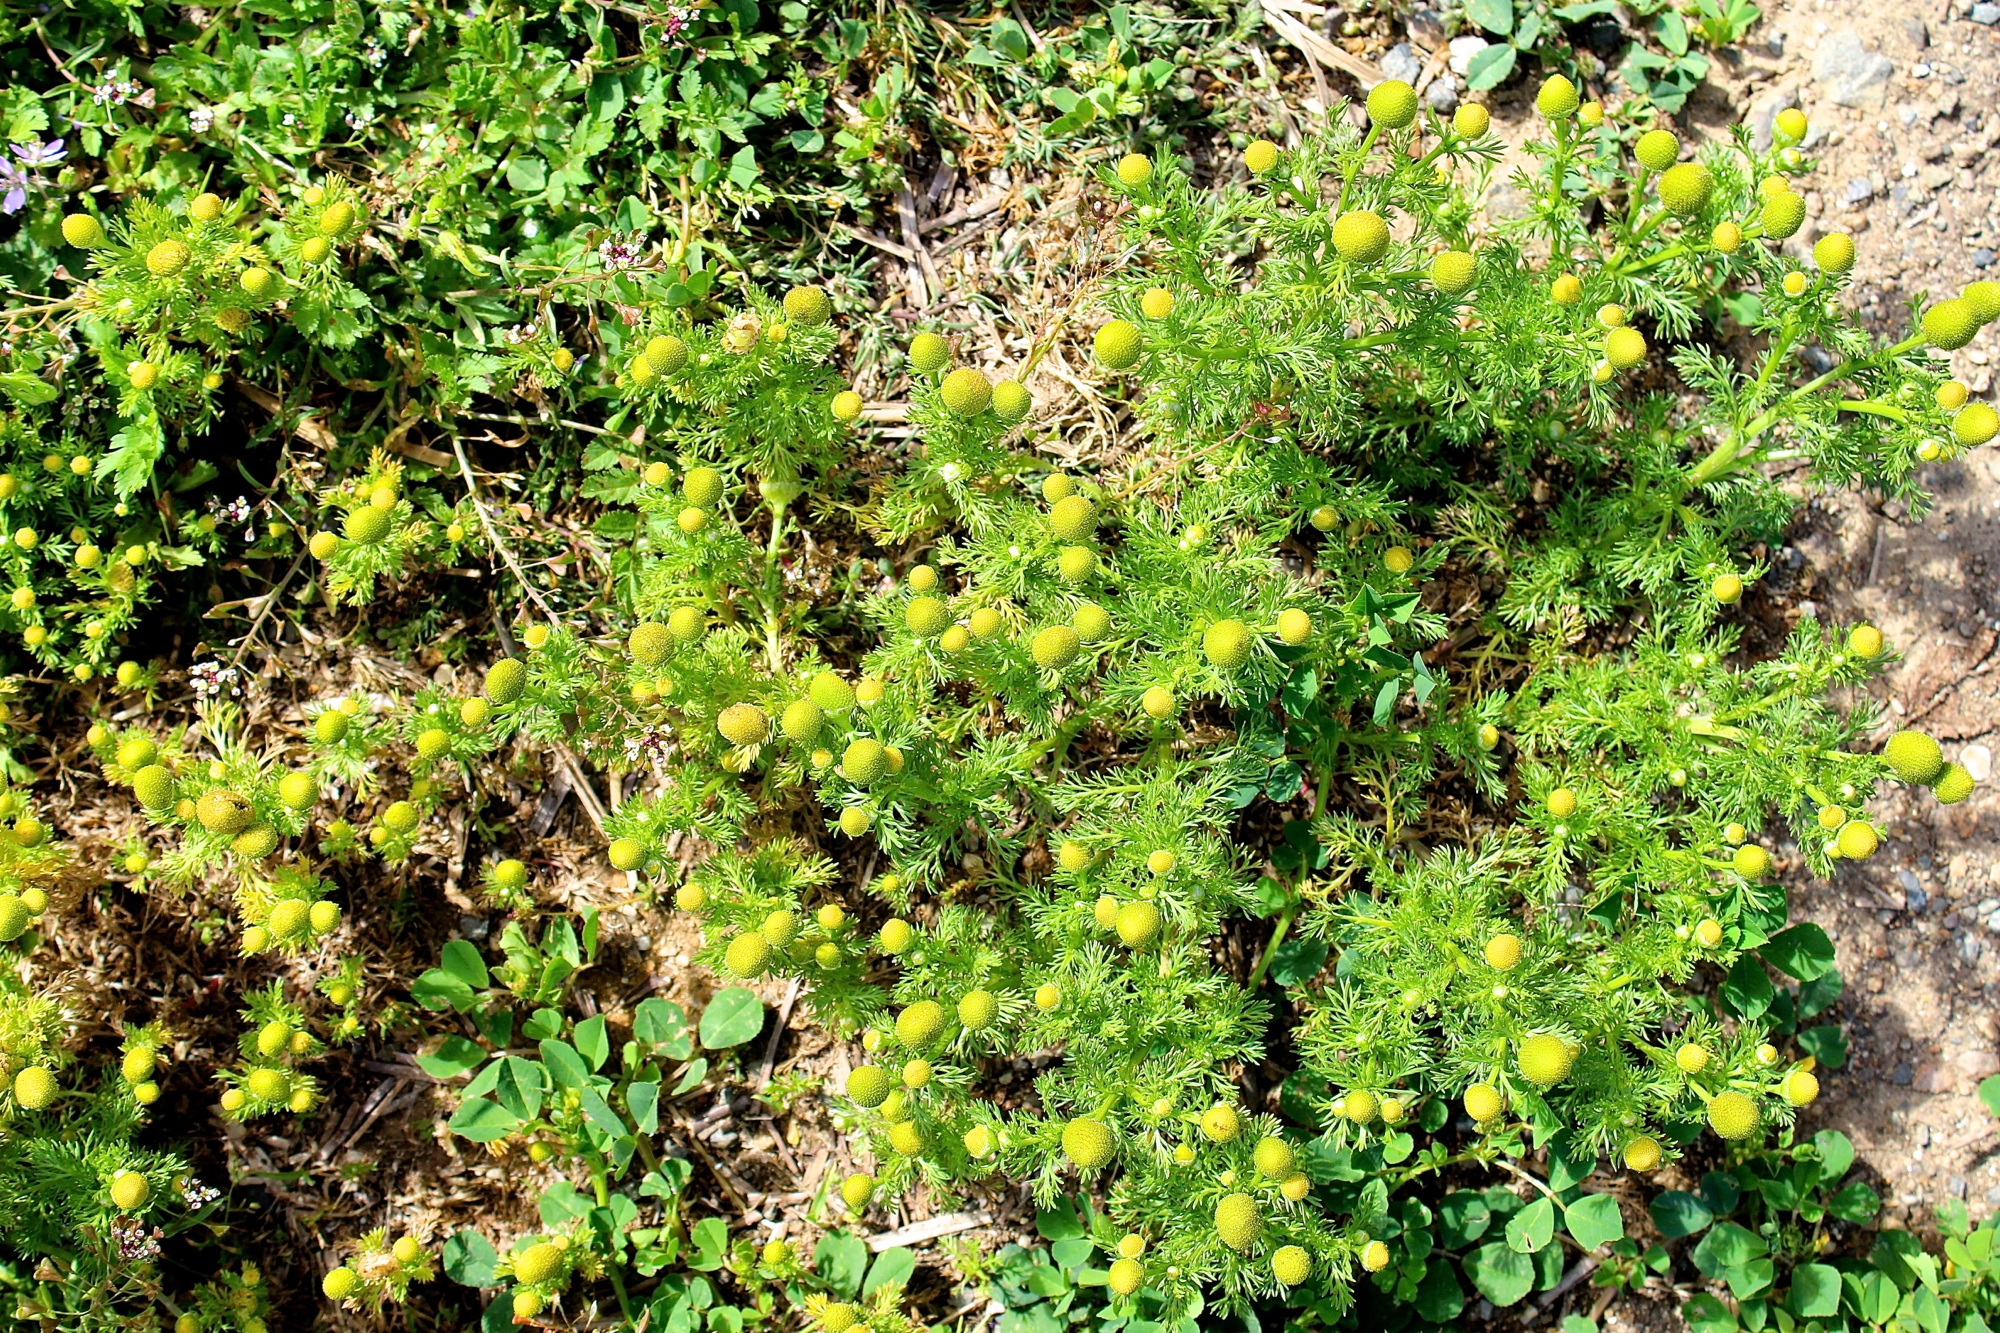 Abundant pineapple weed at the Peralta Community Garden - the members had no problem with my taking as much as I wanted.